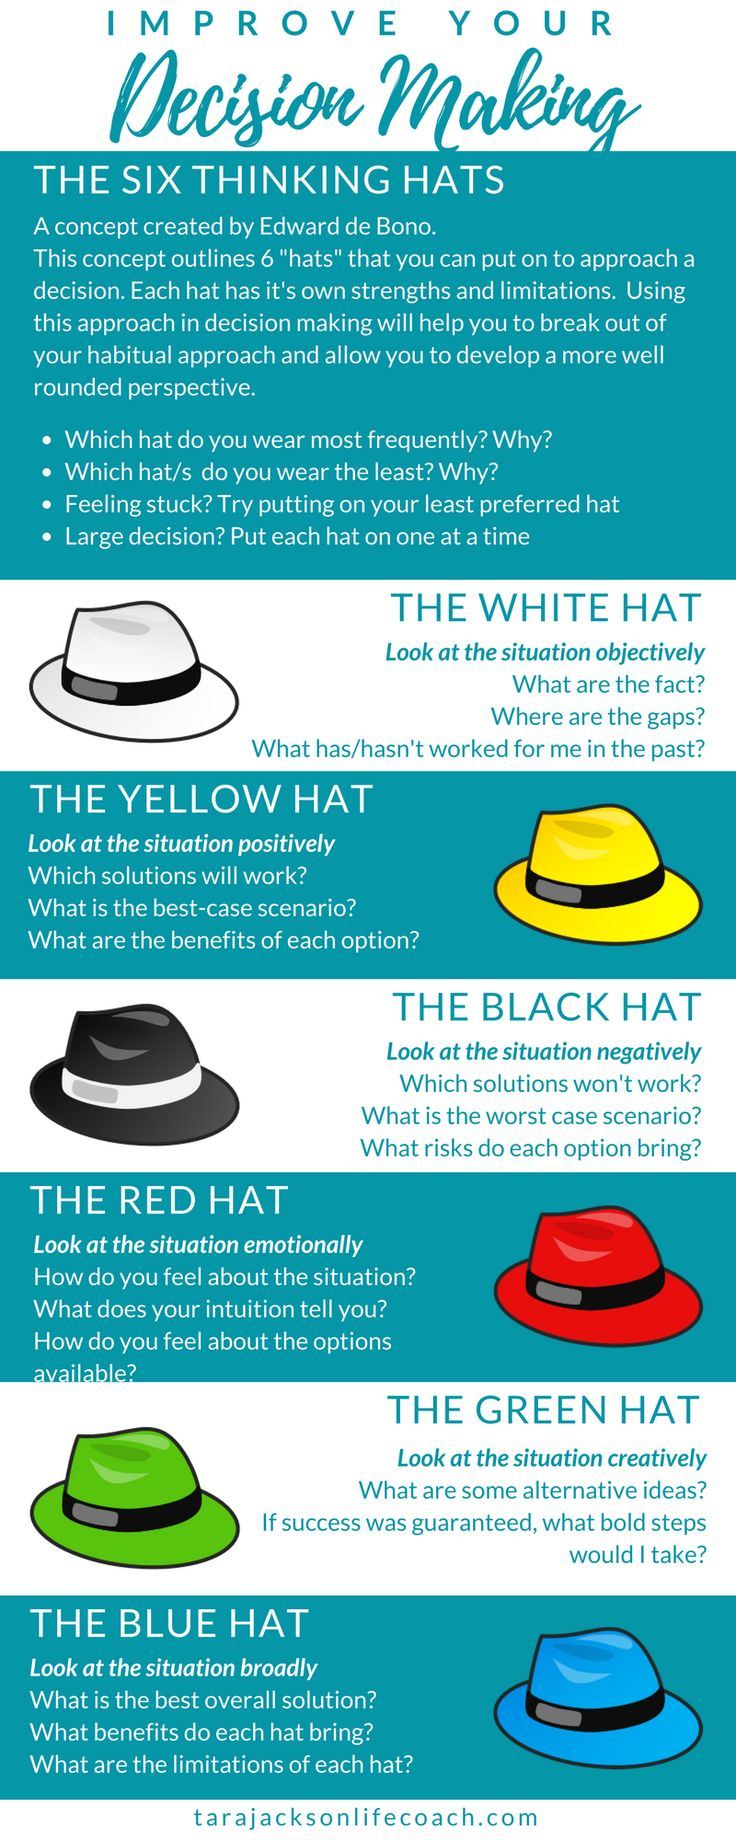 You make countless decision every day.⏩ Every one of these decisions has an outcome.⏩ Every outcome impacts your life in some way - big or small.⏩ YOU have the POWER to choose this impact by improving your ability to make strong decisions.⏩Here is one way to do that, using Edward de Bono's Six Thinking Hats